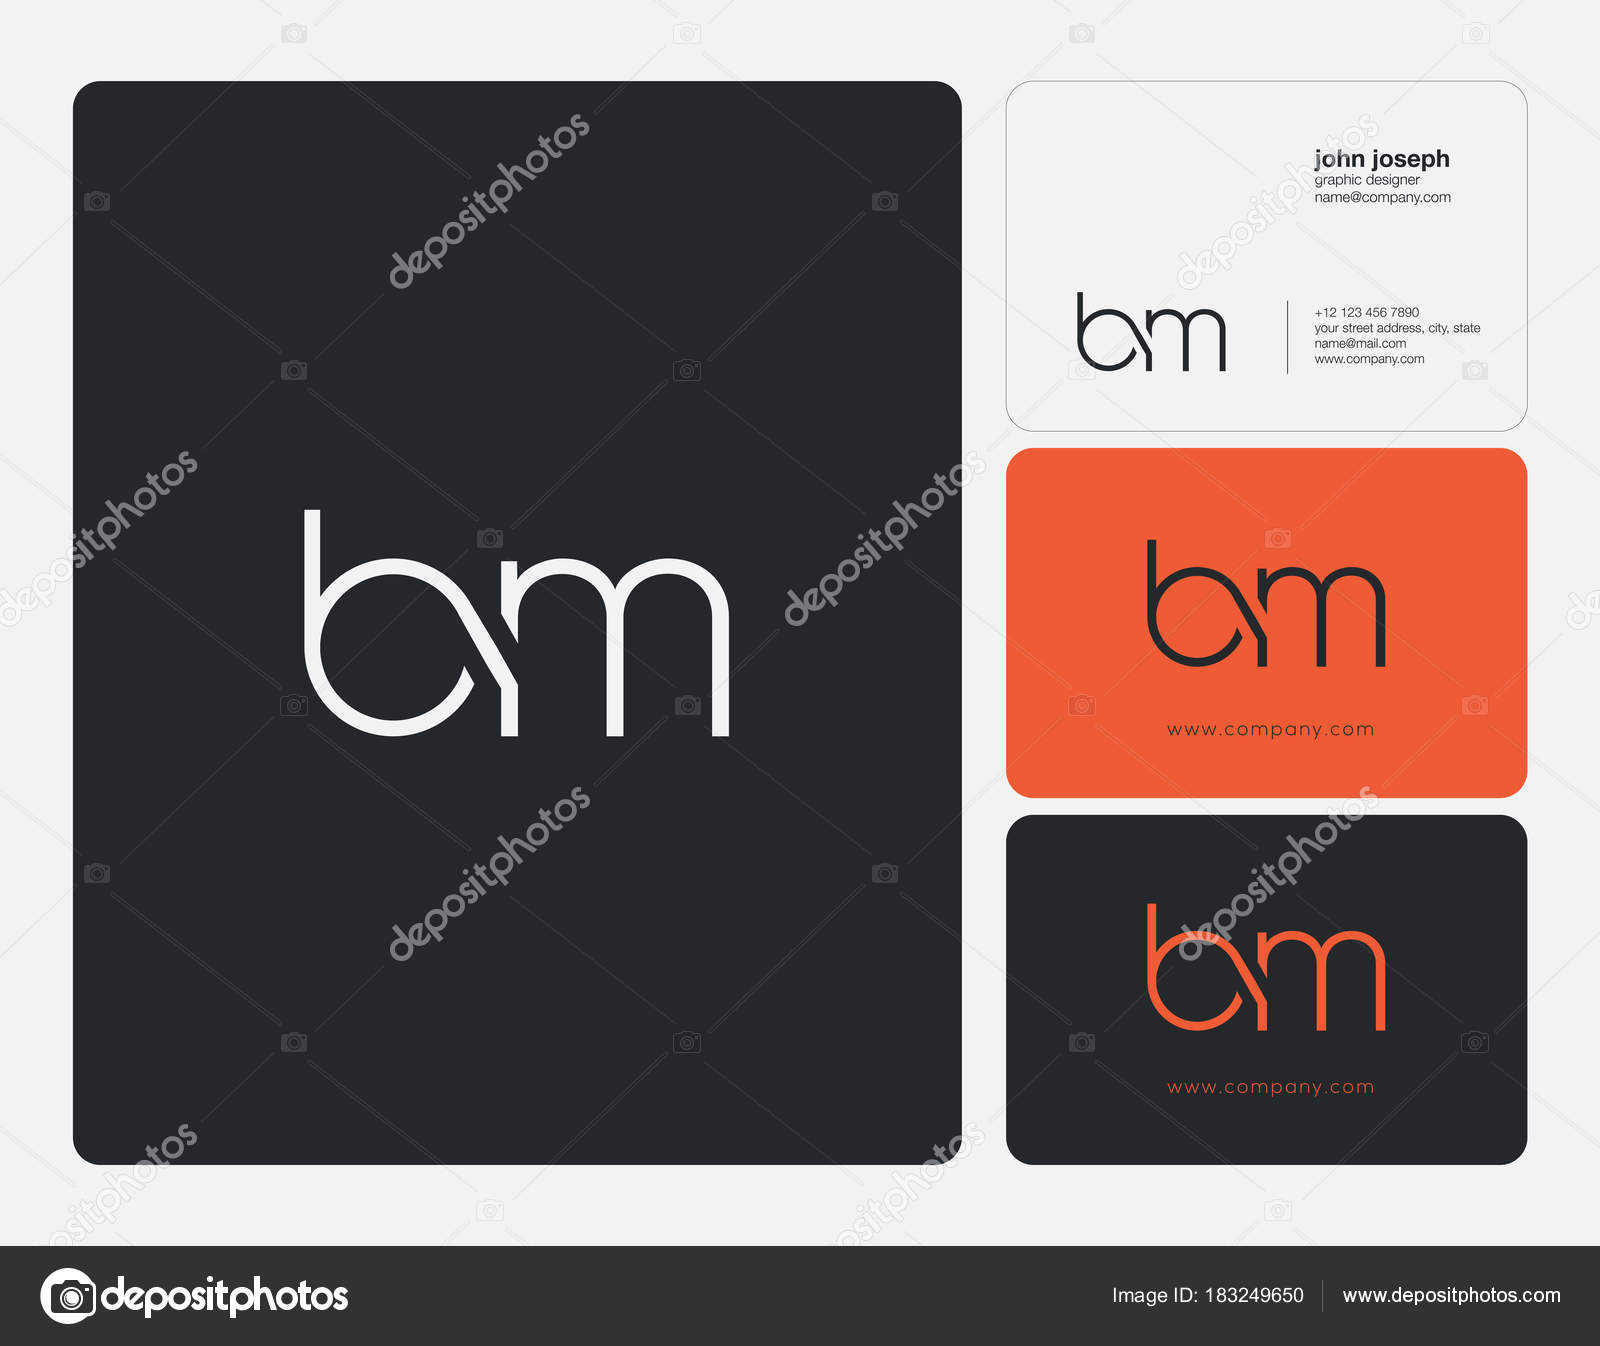 Letters joint logo icon business card vector template stock vector bm letters joint logo icon with business card vector template vector by ajayandzyngmail colourmoves Images